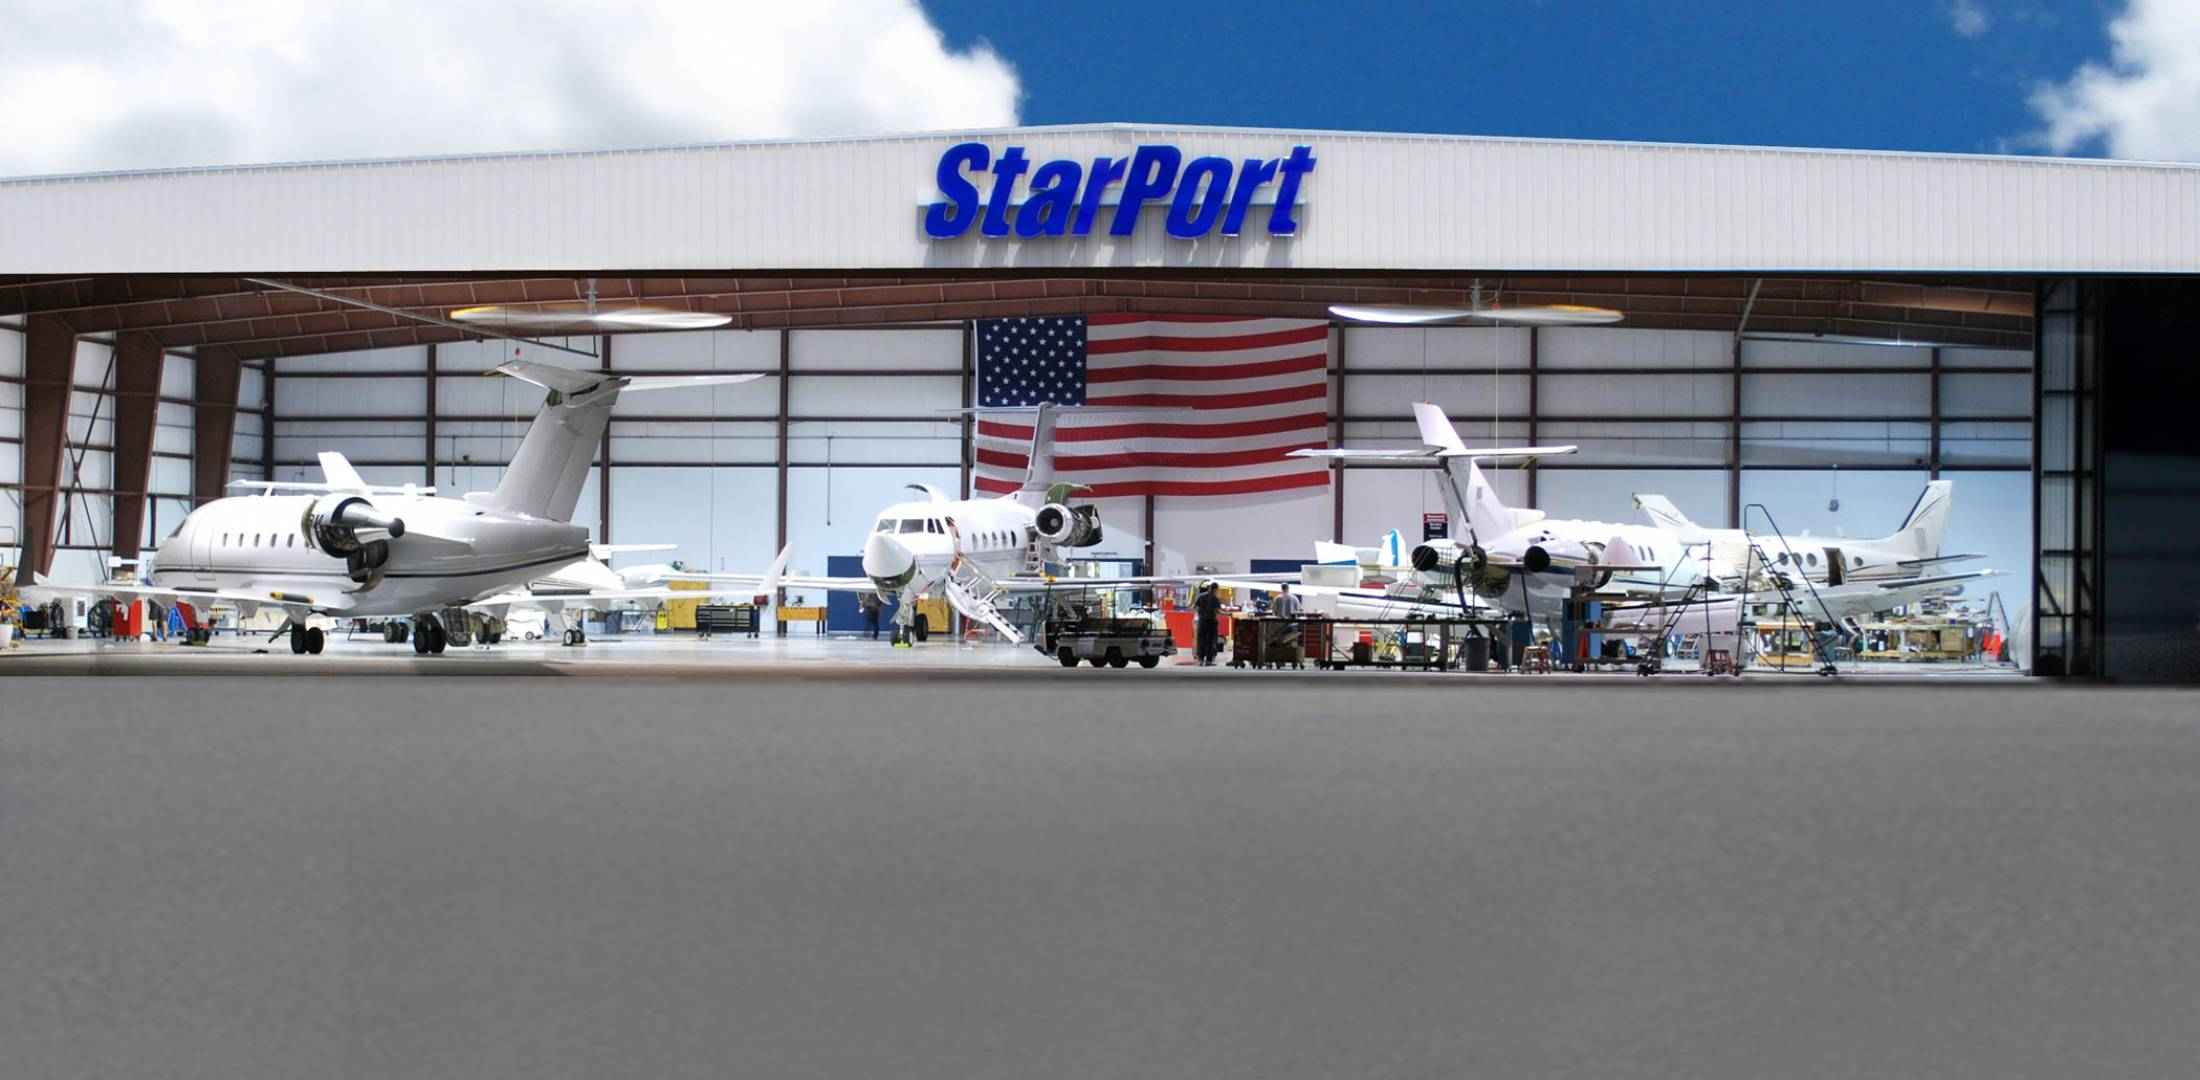 Starport ramp and hangar